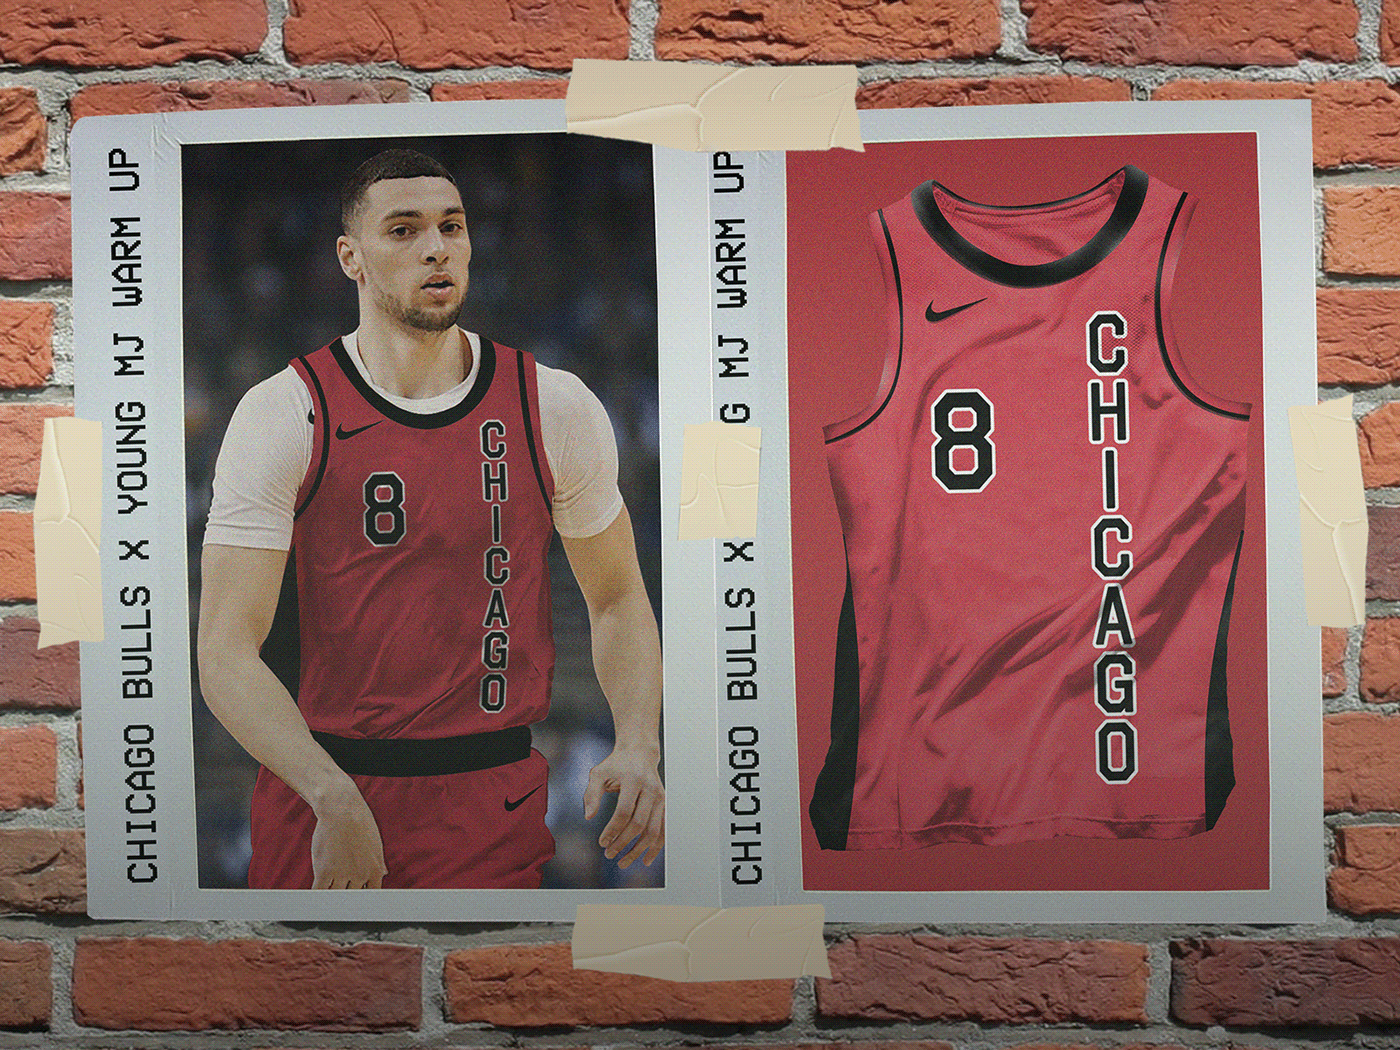 Image may contain: outdoor, sports uniform and basketball